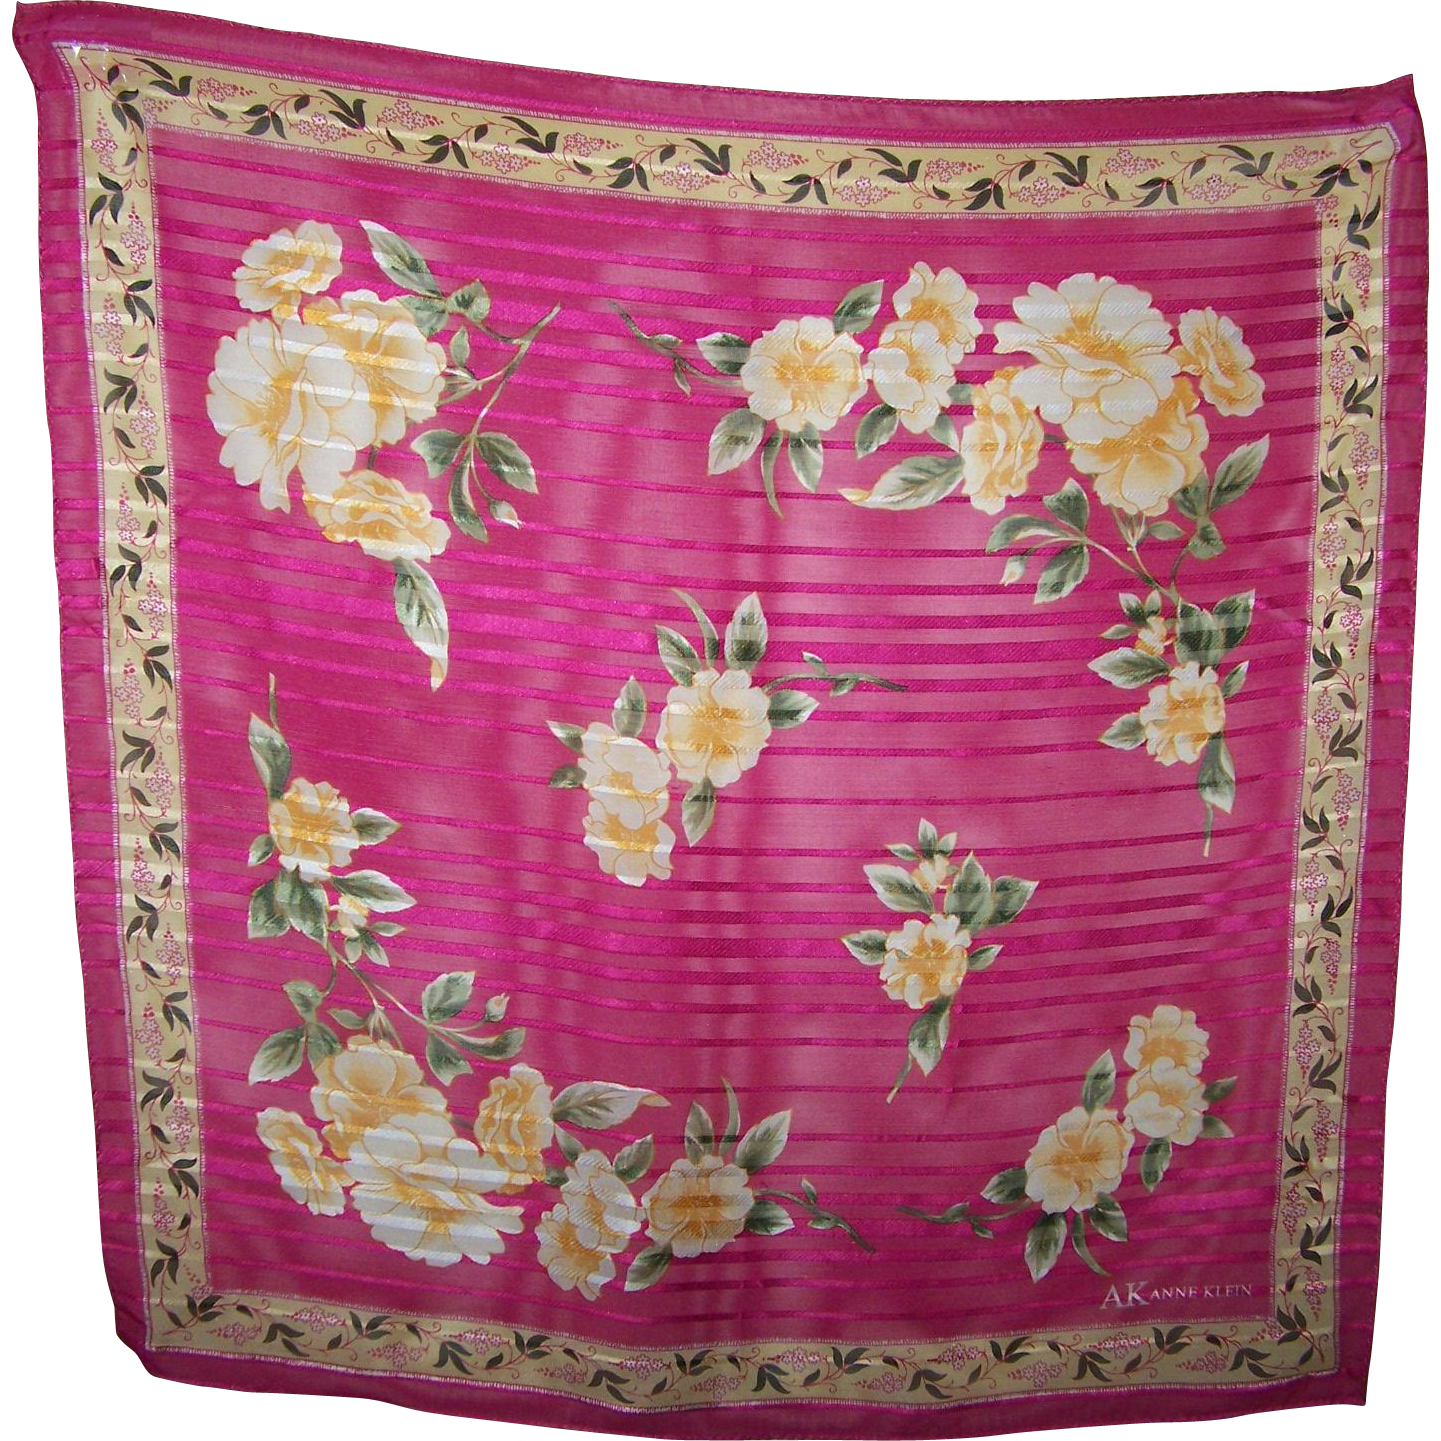 Designer Signed  AK Anne Klein Small Silk Scarf  Floral Rose Pattern / Theme